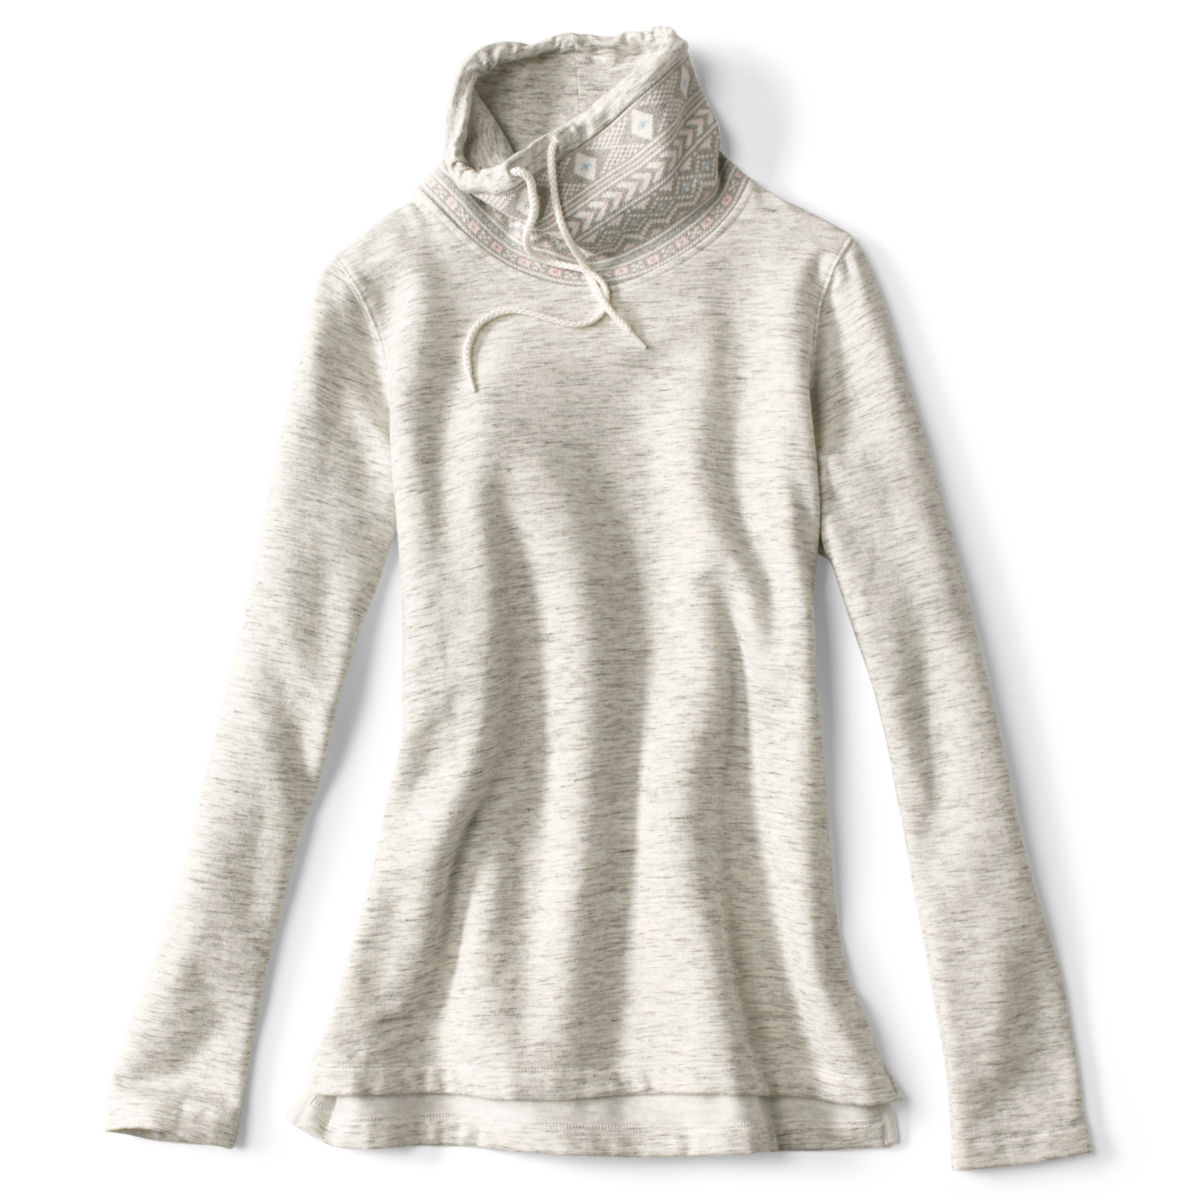 Jacquard Cowl Supersoft Sweatshirt - HEATHERED GRAYimage number 0